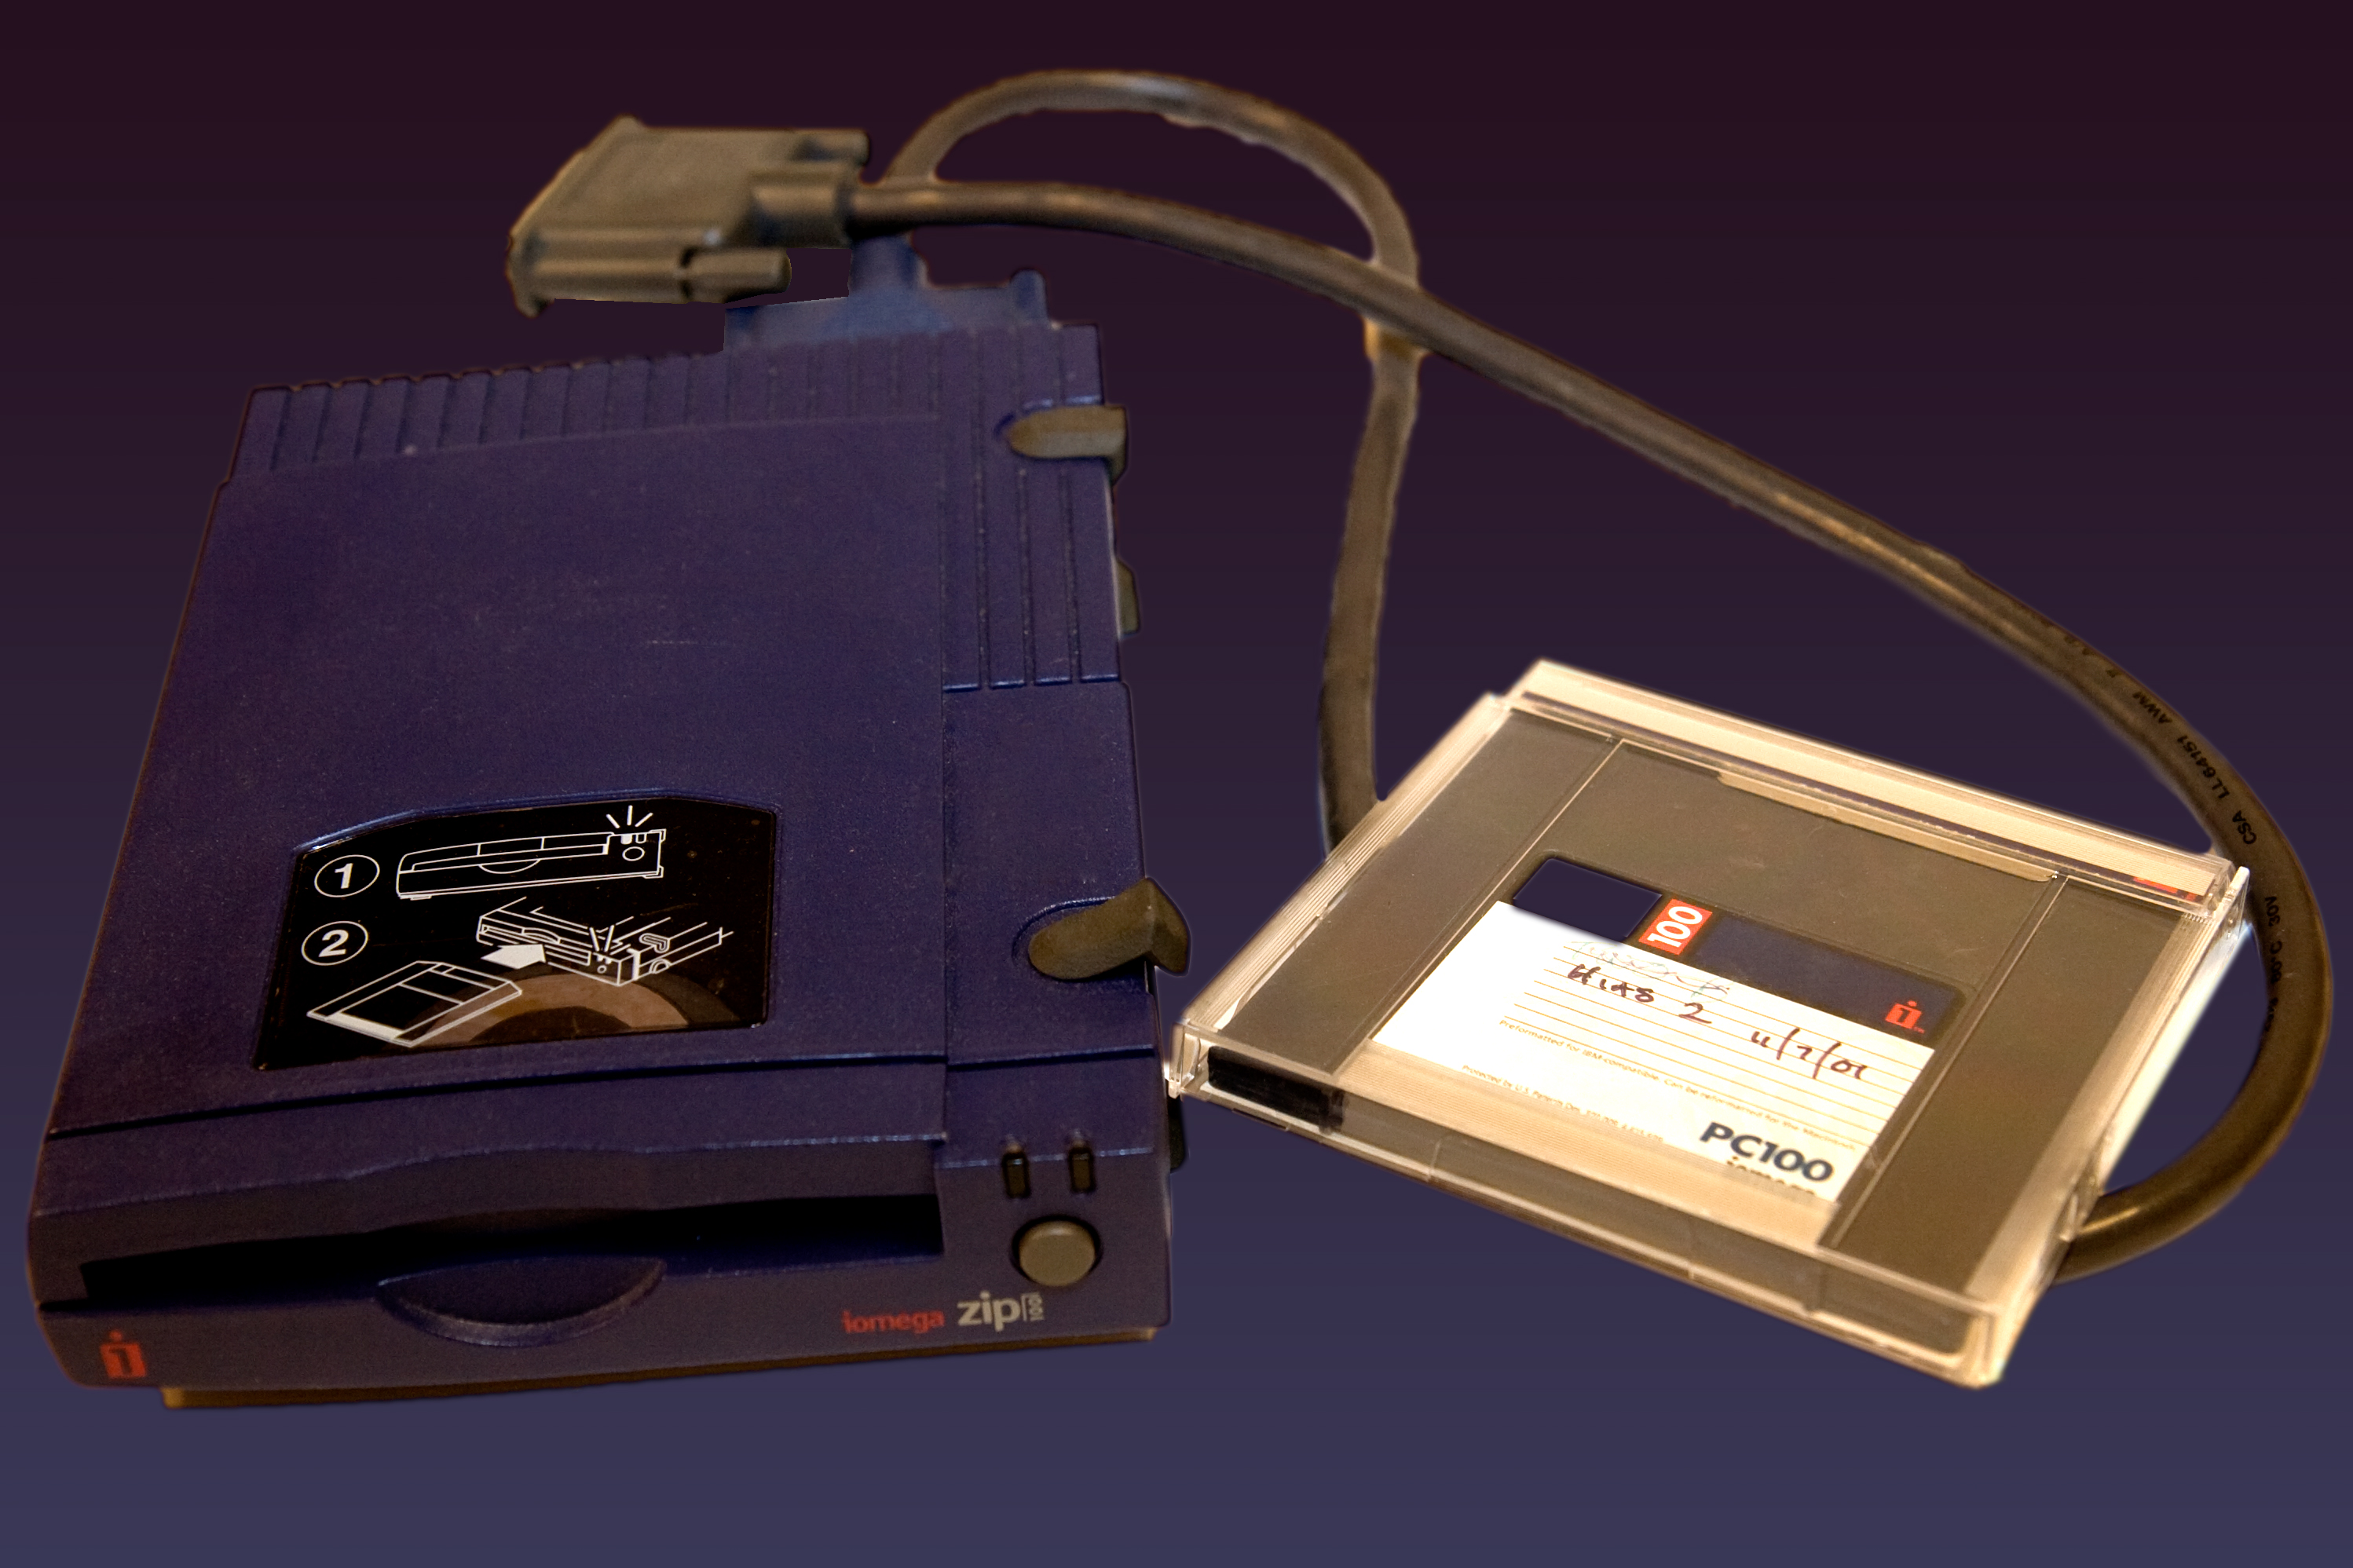 The Zip drive was an external storage system that used discs similar in size to a 3.5 floppy but thicker and able to hold much more data. 100MB (3.5 discs held 1.44MB) discs were used and later 250 and 750MB discs came out.